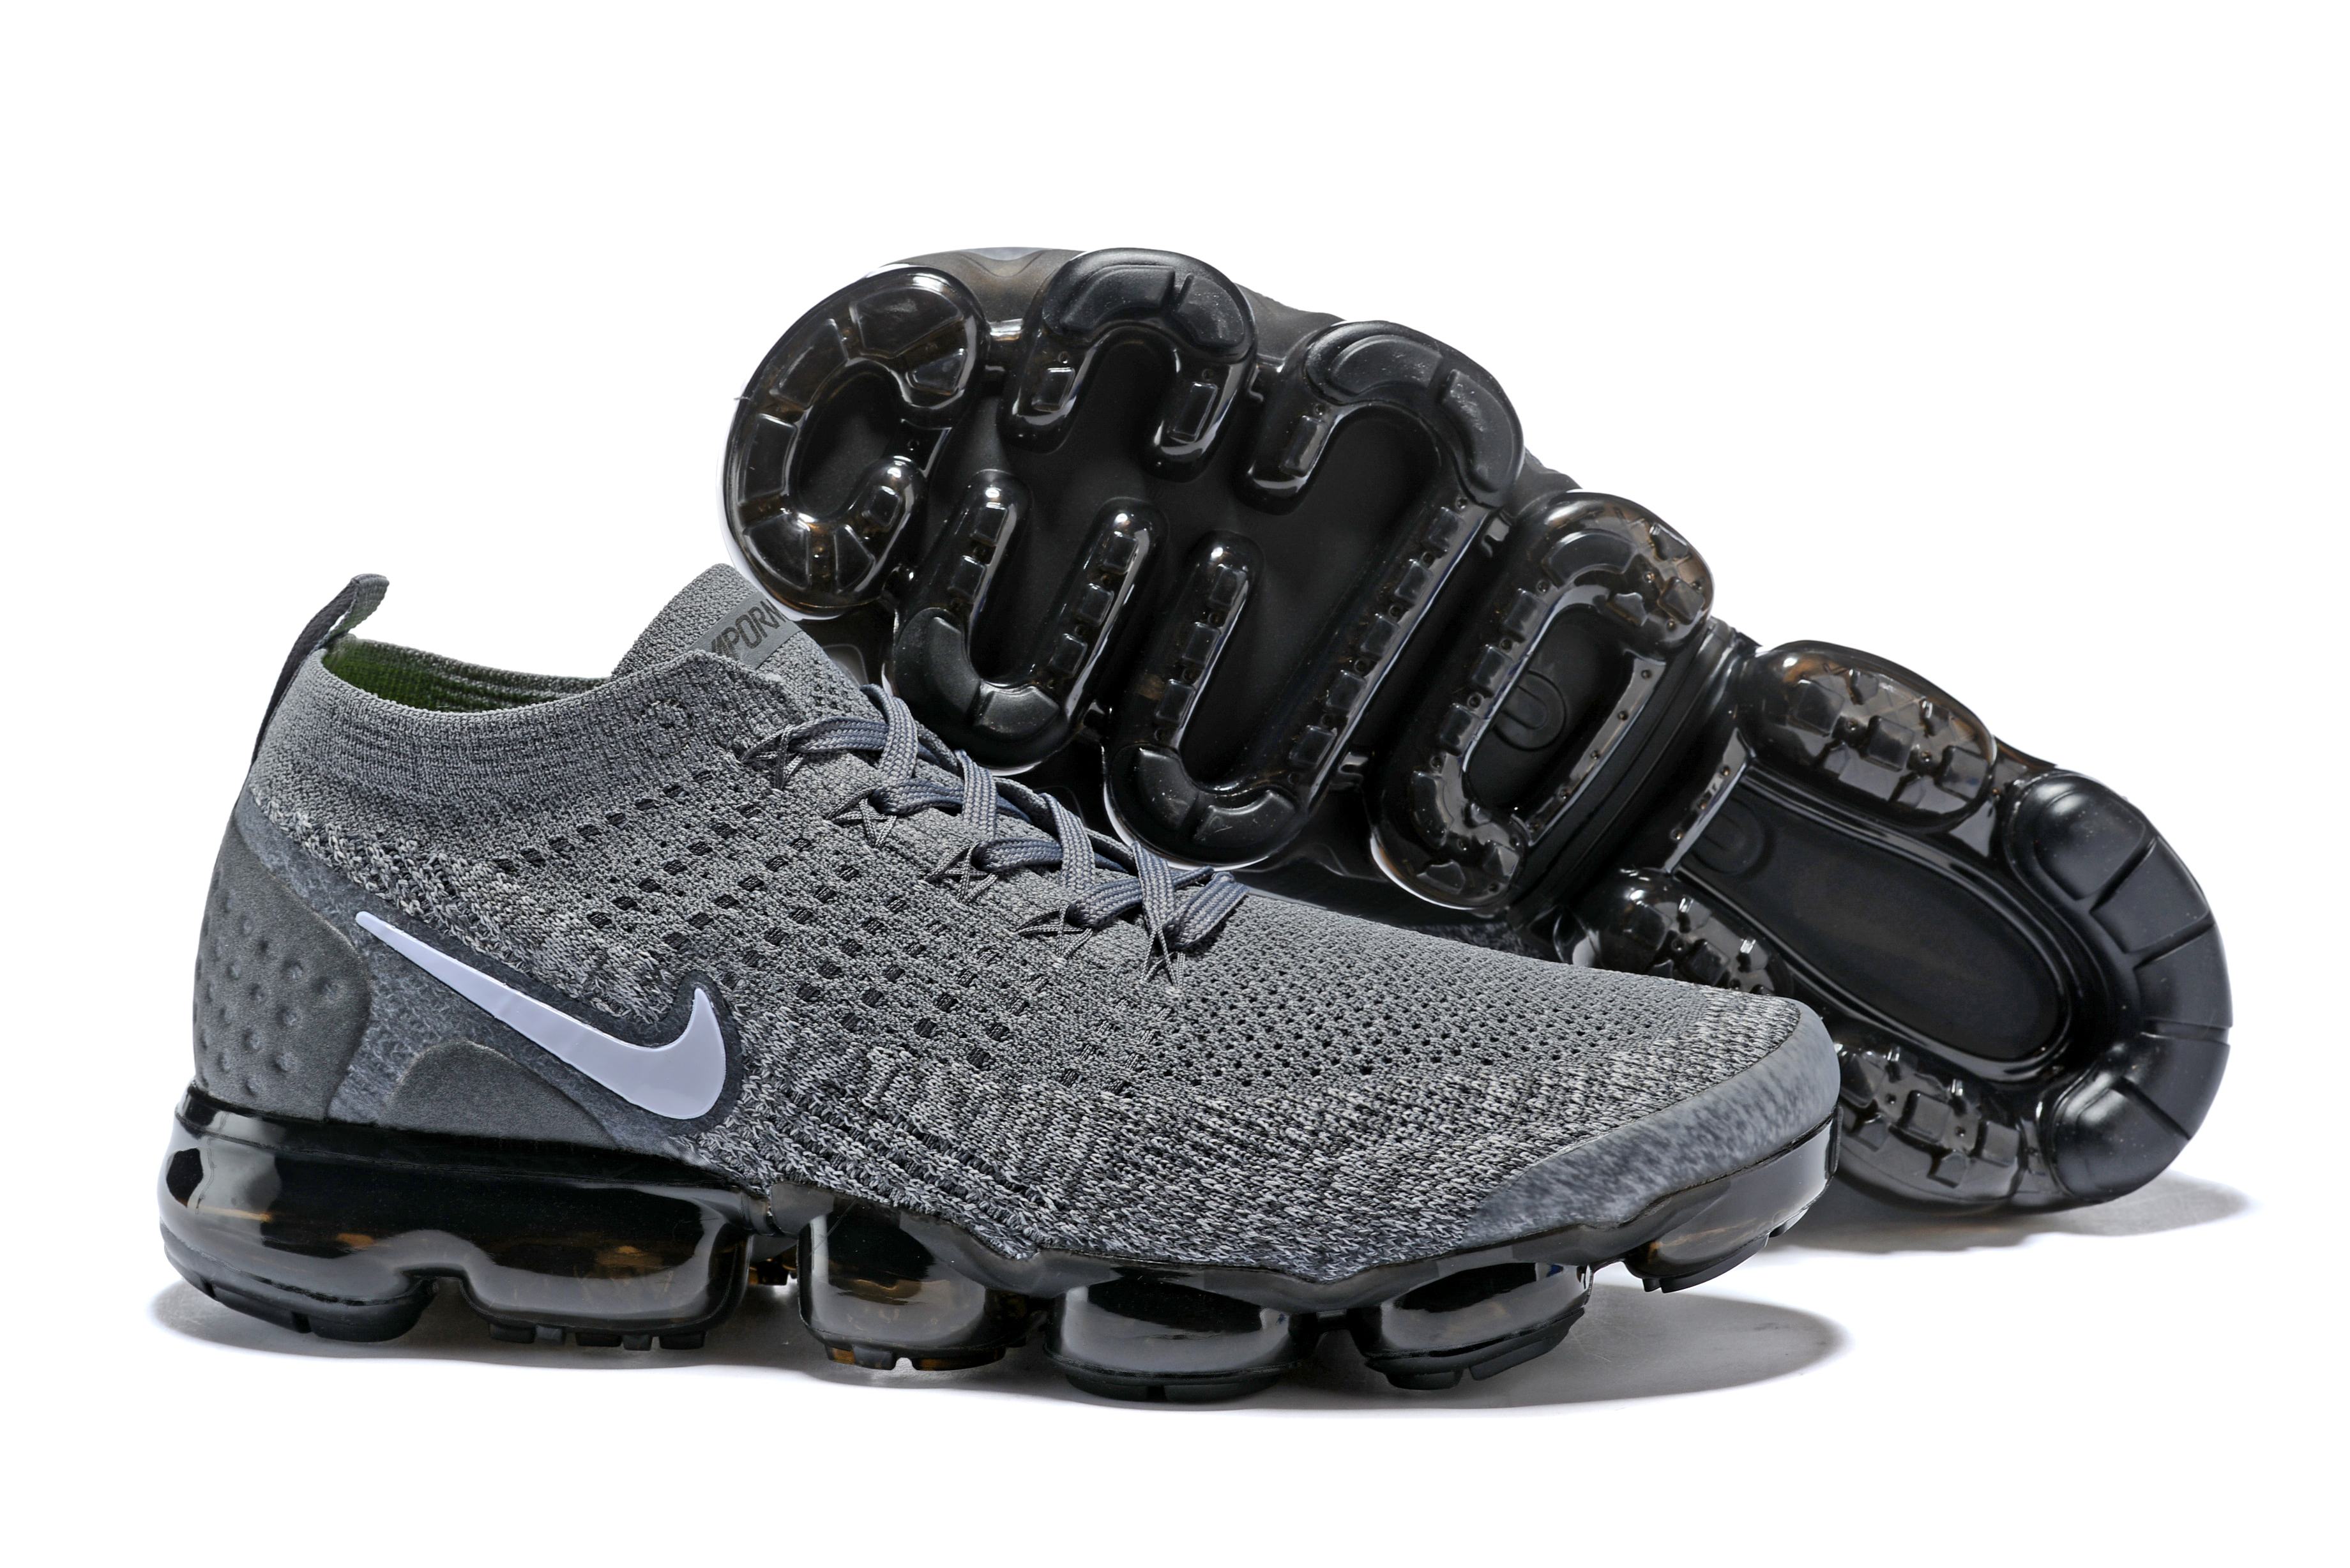 2018 Nike Air VaporMax II Grey Black Shoes